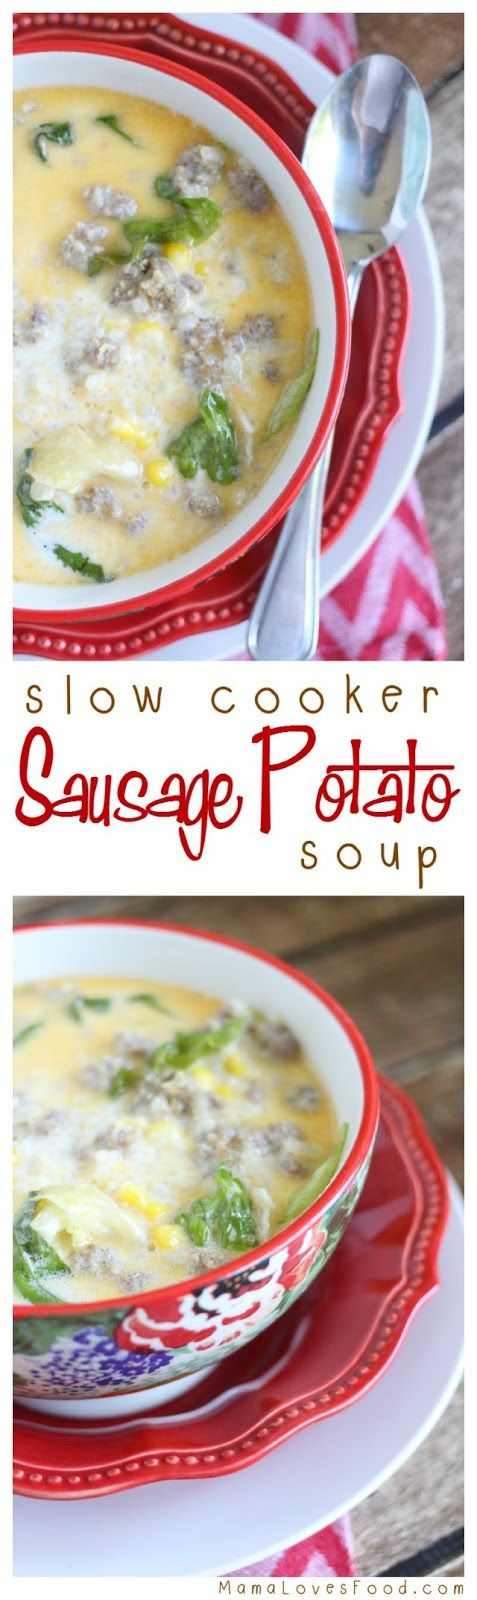 Sausage Potato Soup for the Slow Cooker [AND A CROCKPOT GIVEAWAY] #SimplyPotatoes ad